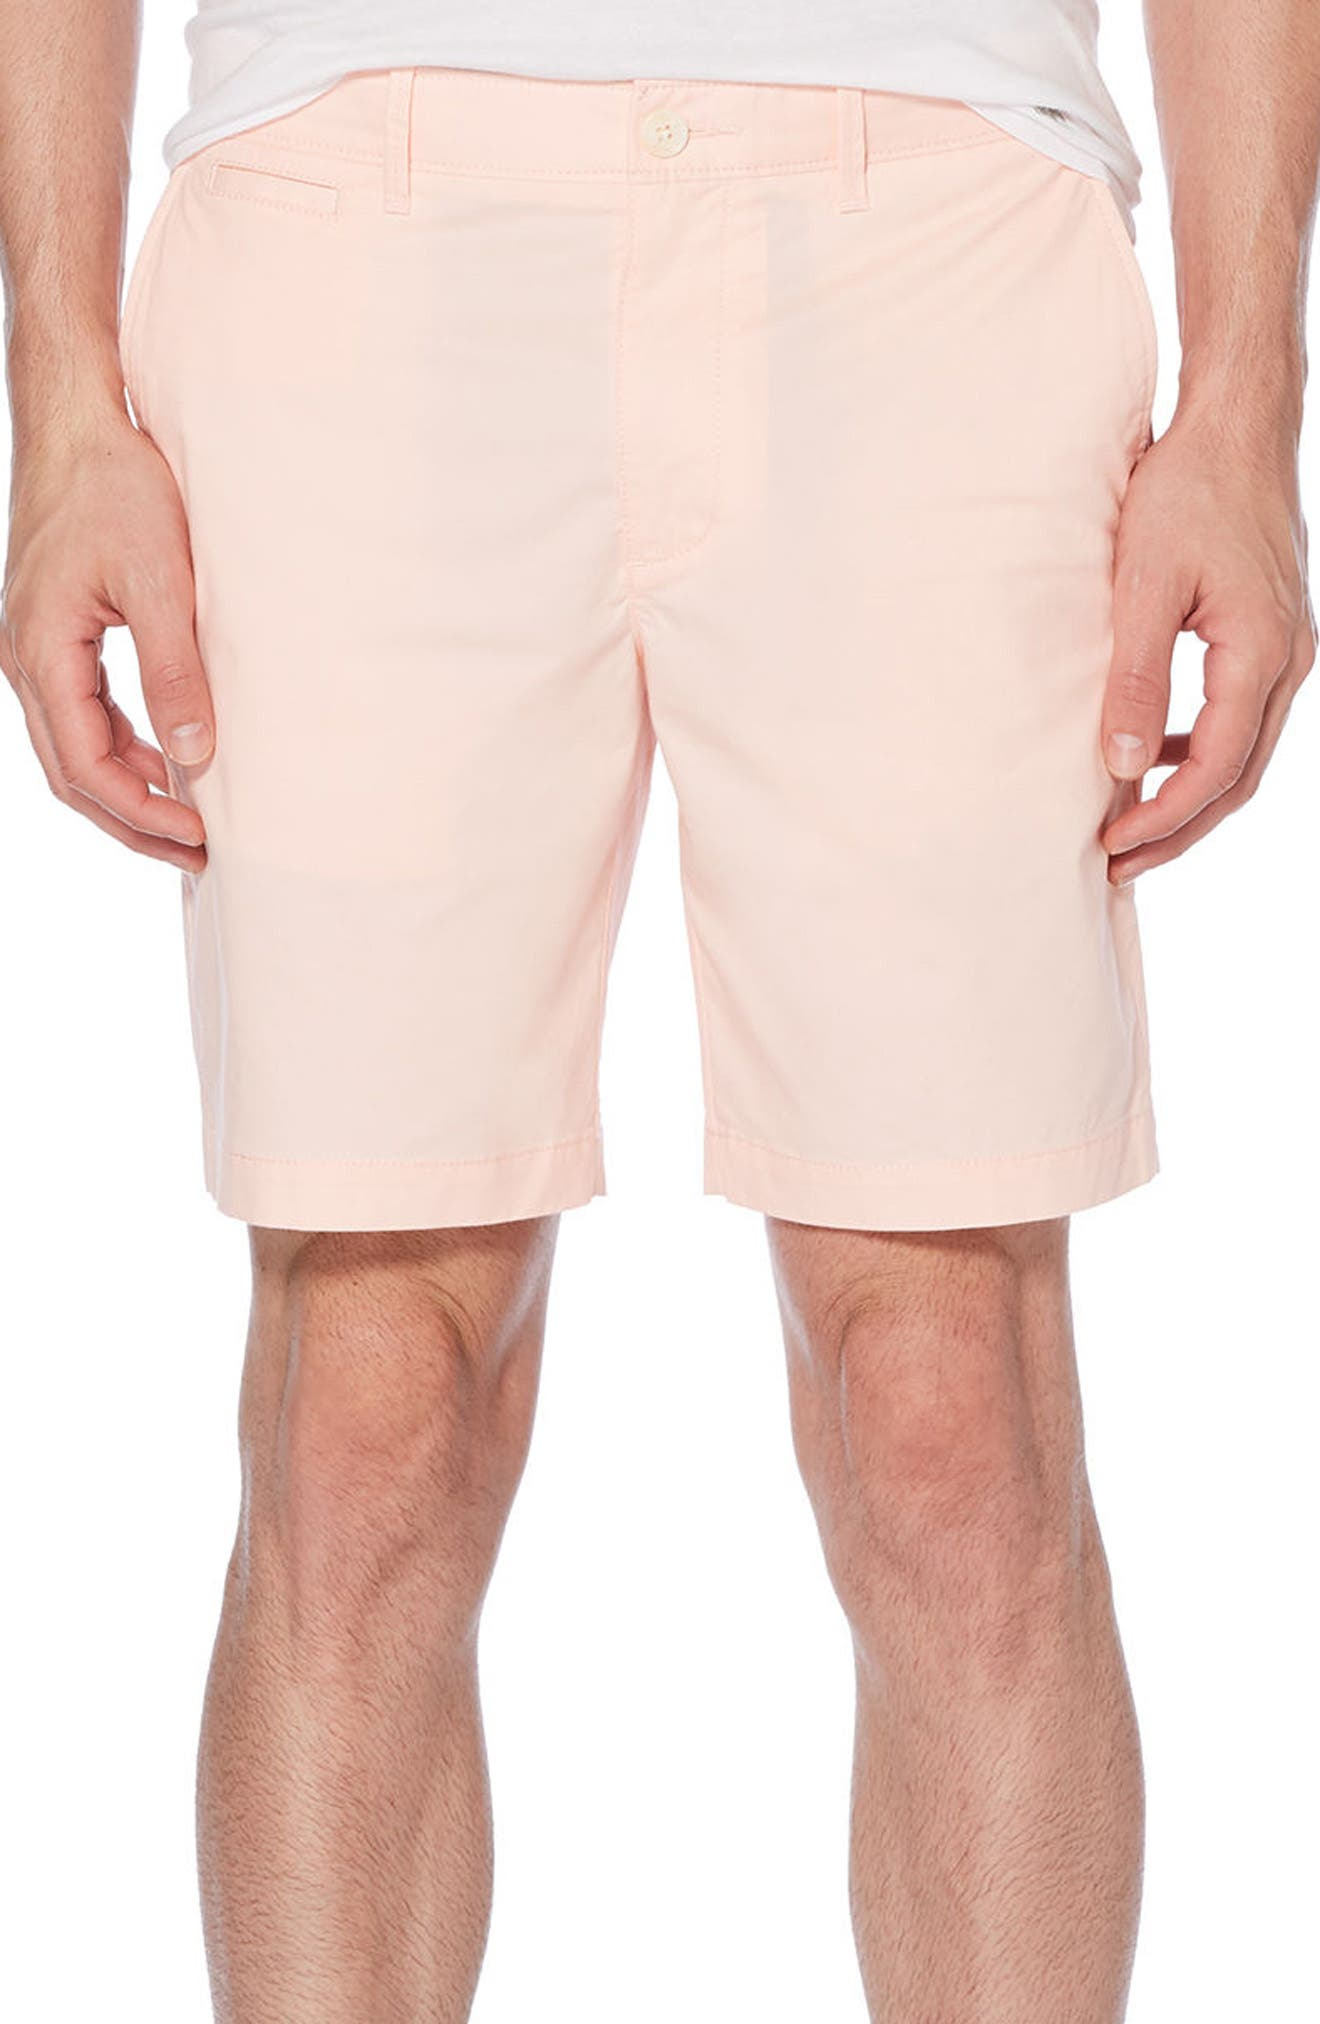 P55 Shorts,                         Main,                         color, Impatiens Pink